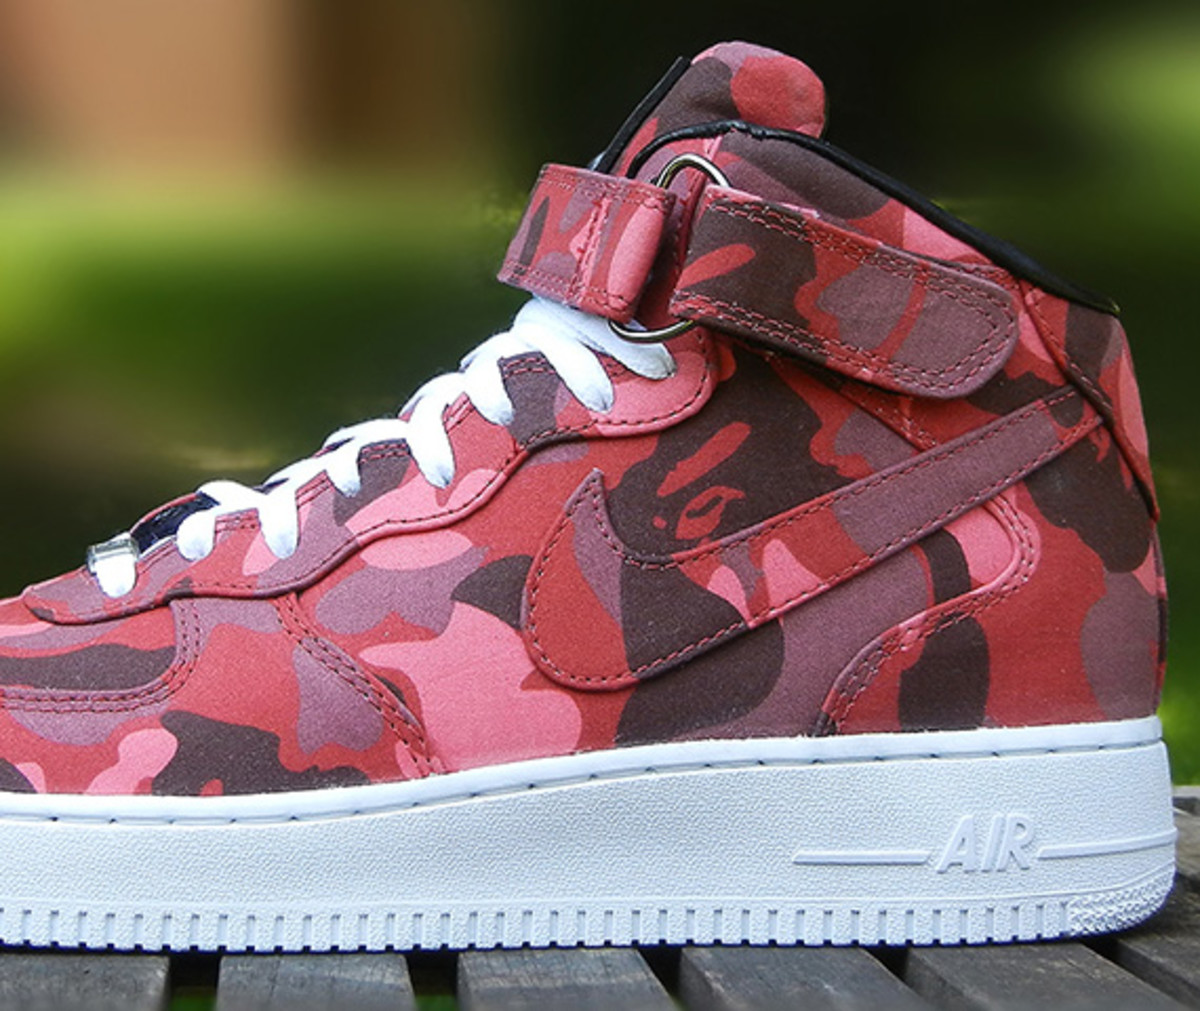 nike-air-force-1-bape-1st-camo-incomparable-custom-by-jbf-customs-06